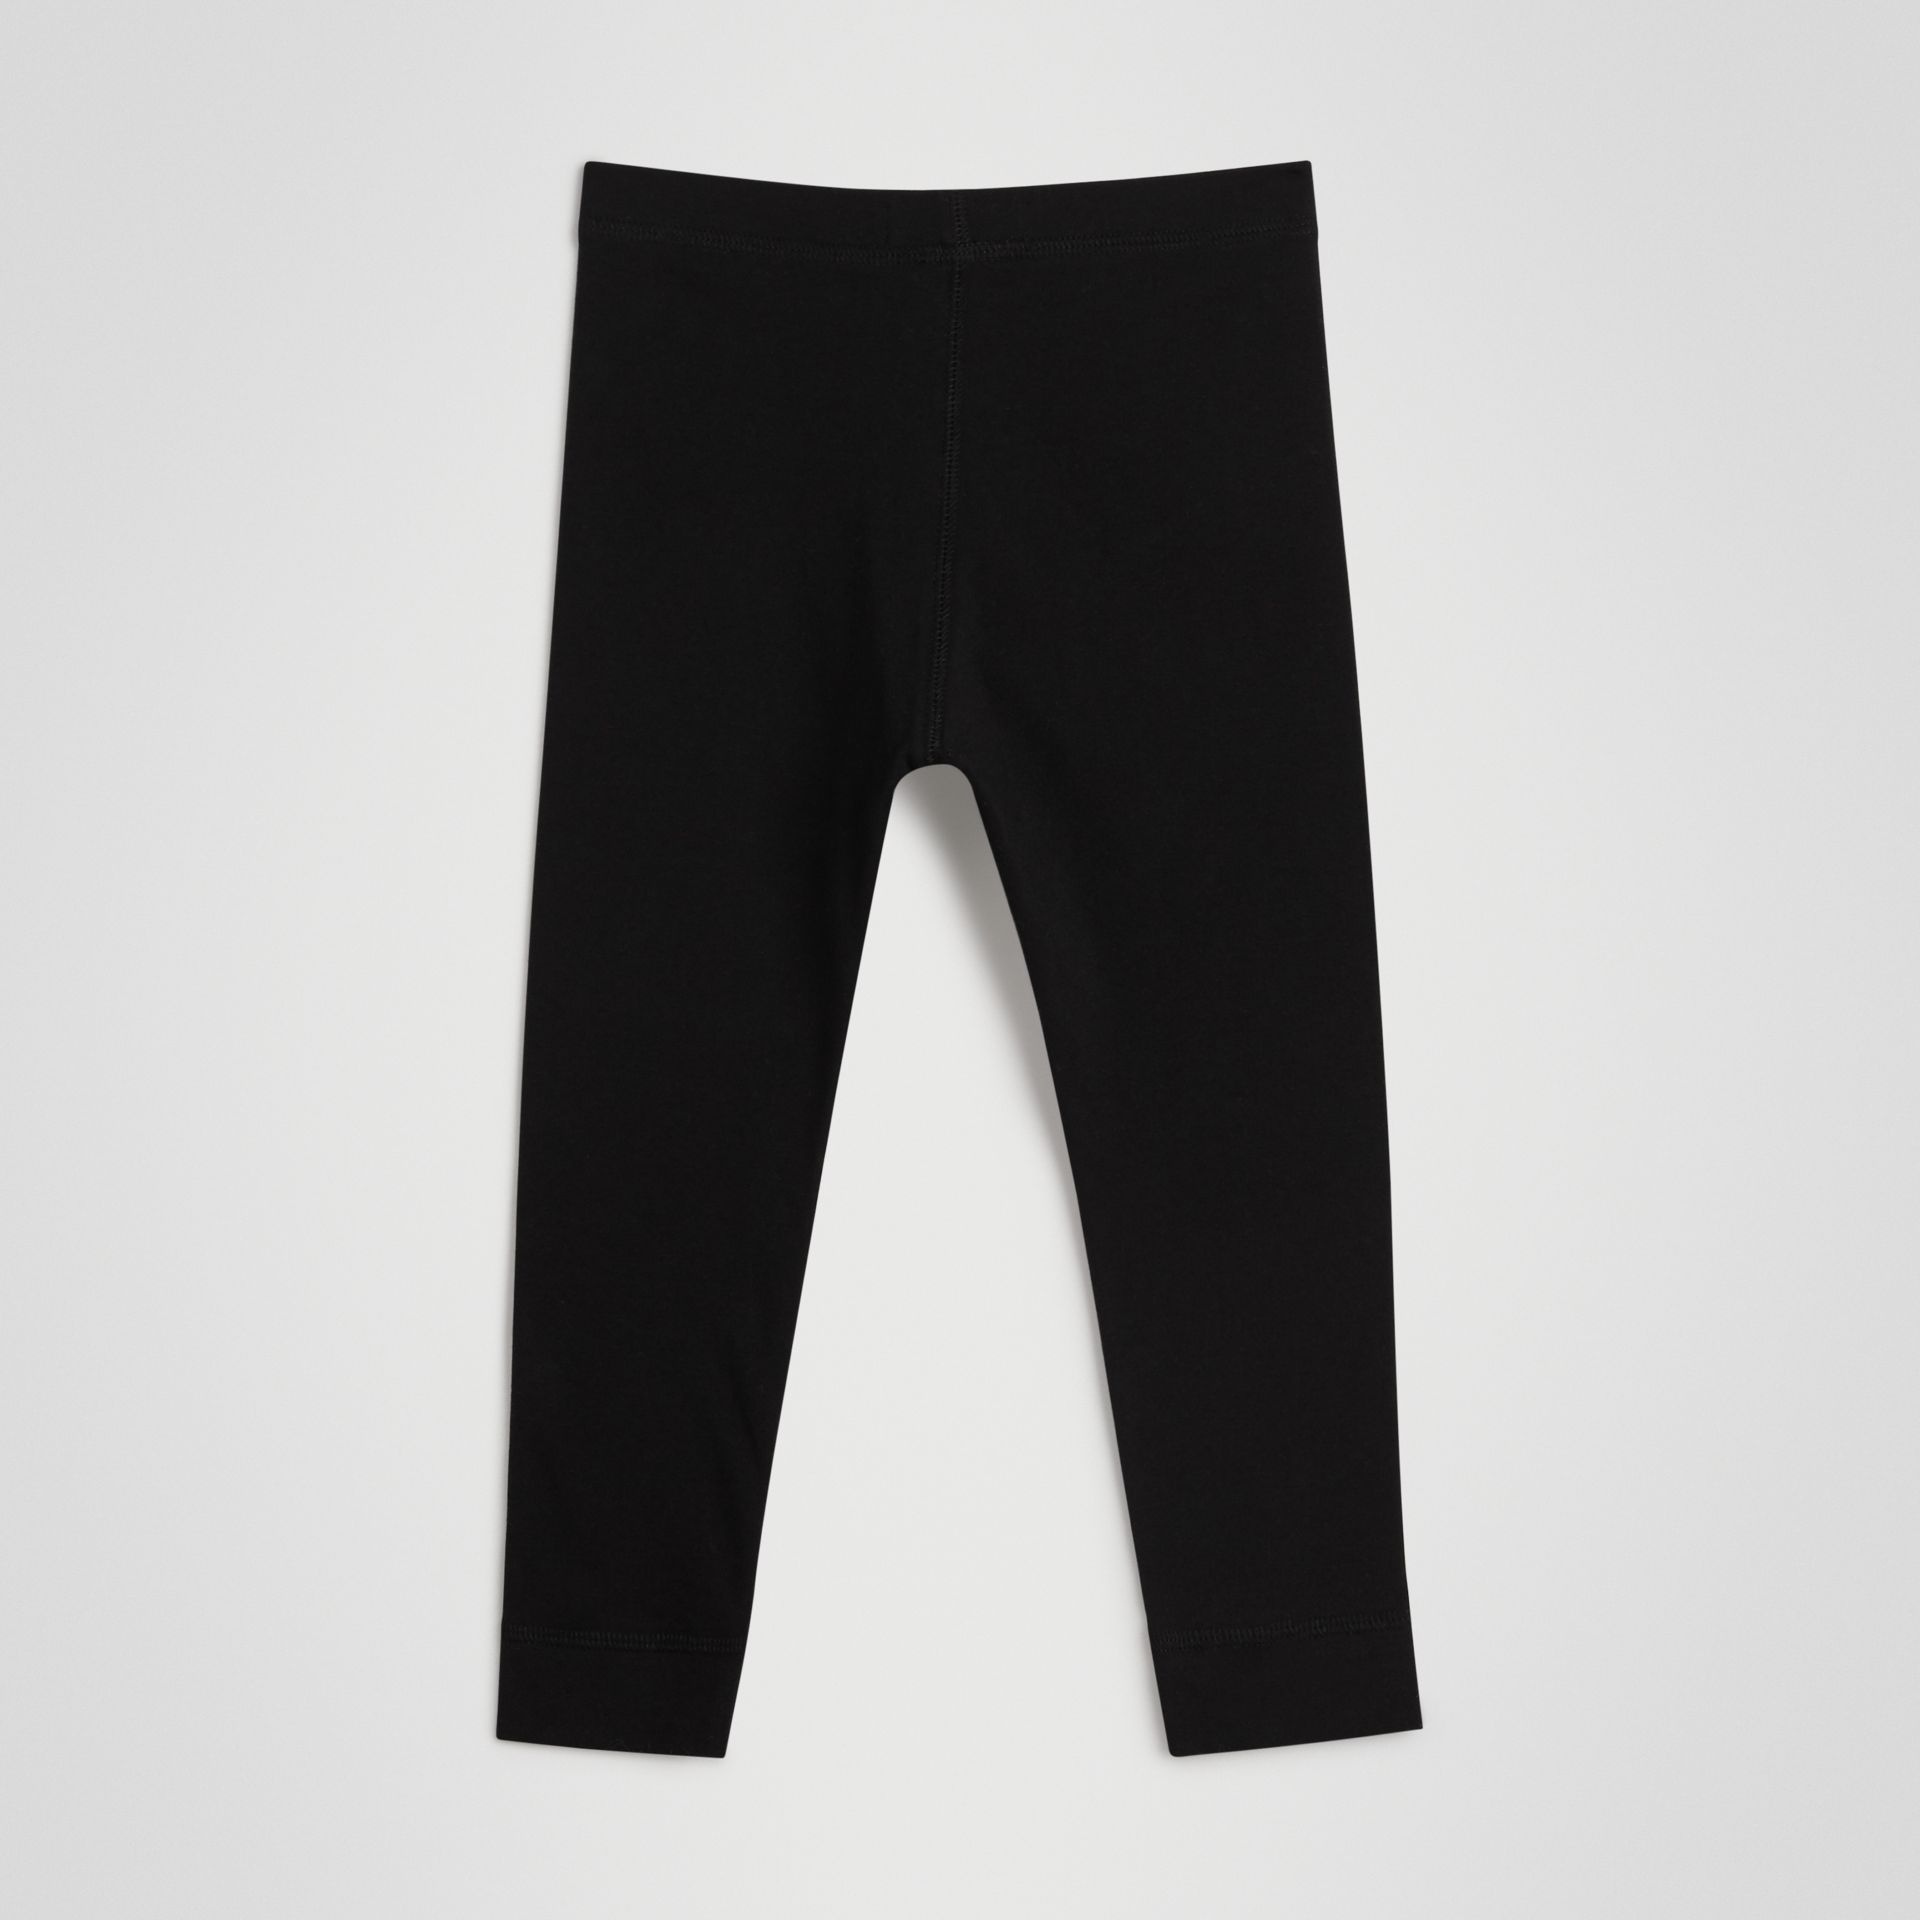 Legging en coton extensible avec logo (Noir) | Burberry - photo de la galerie 3